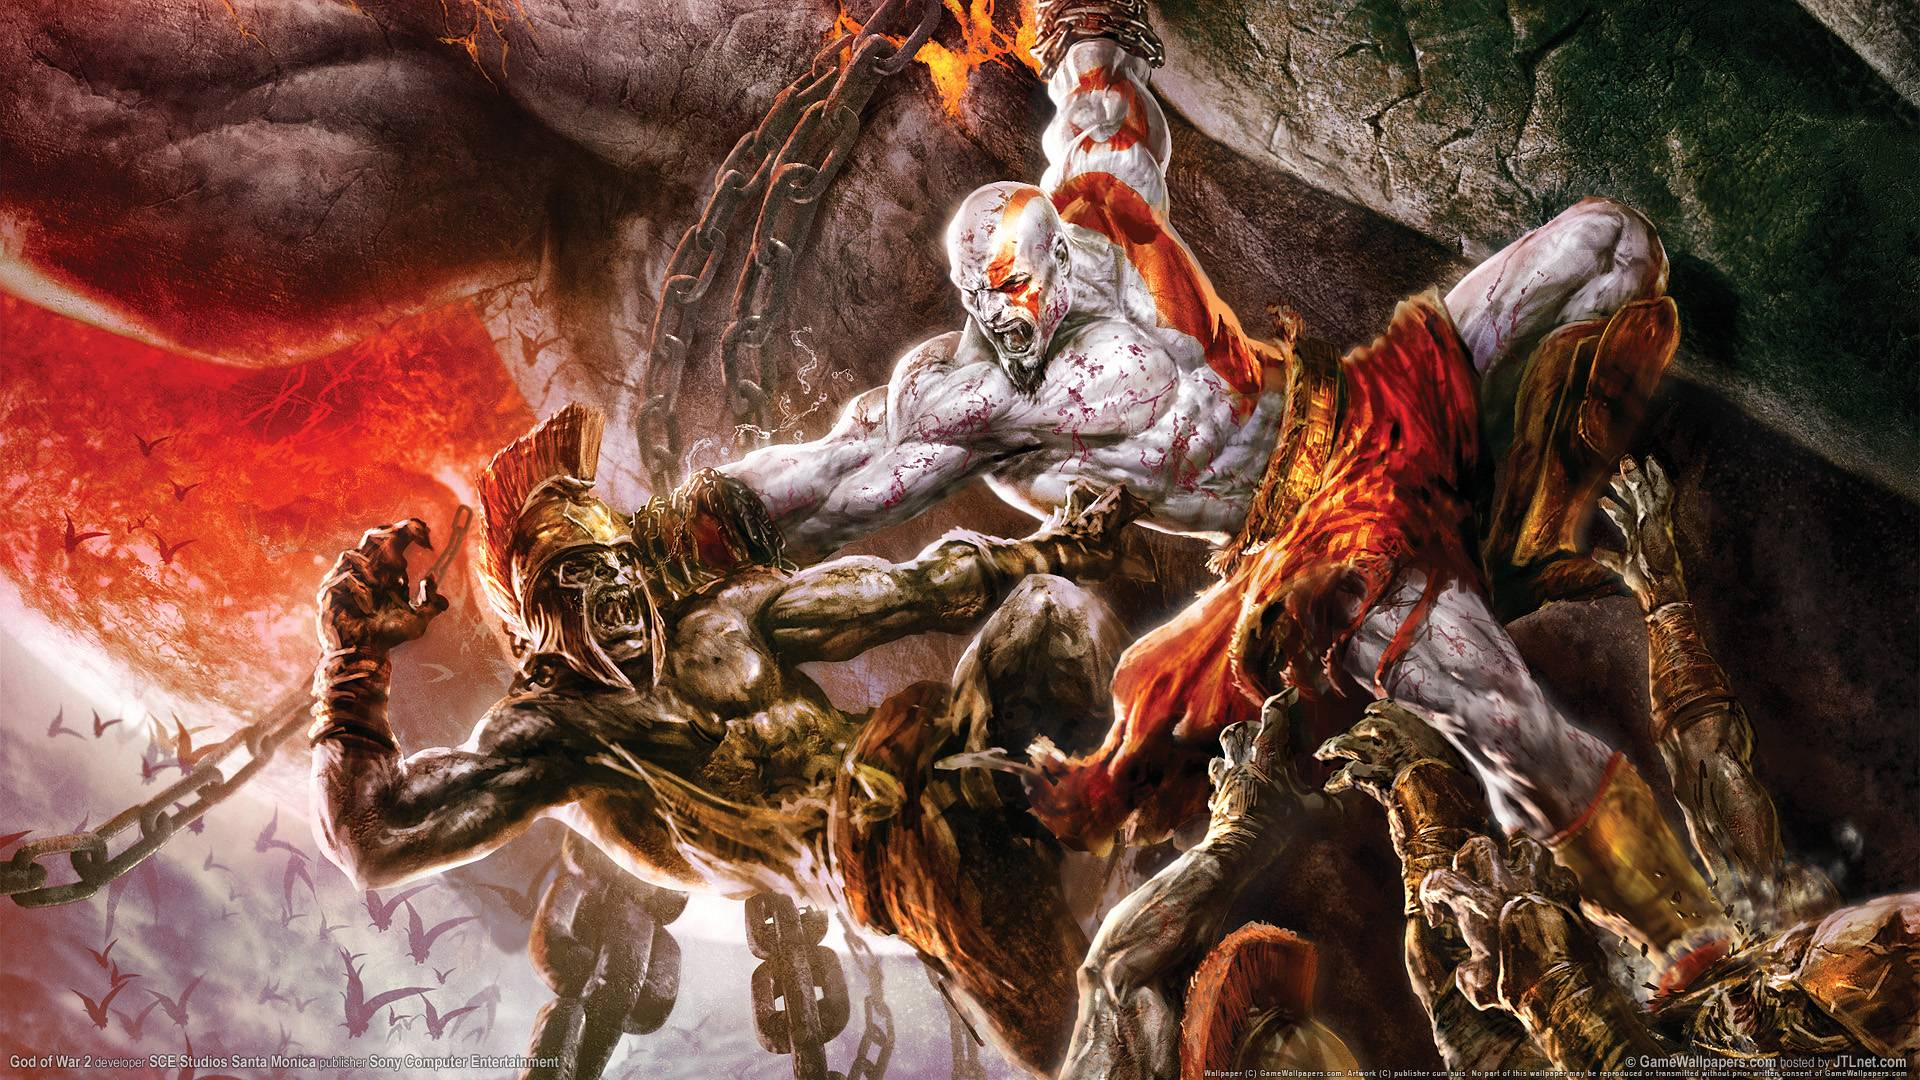 wallpapers for god of war 3 wallpaper hd 1080p